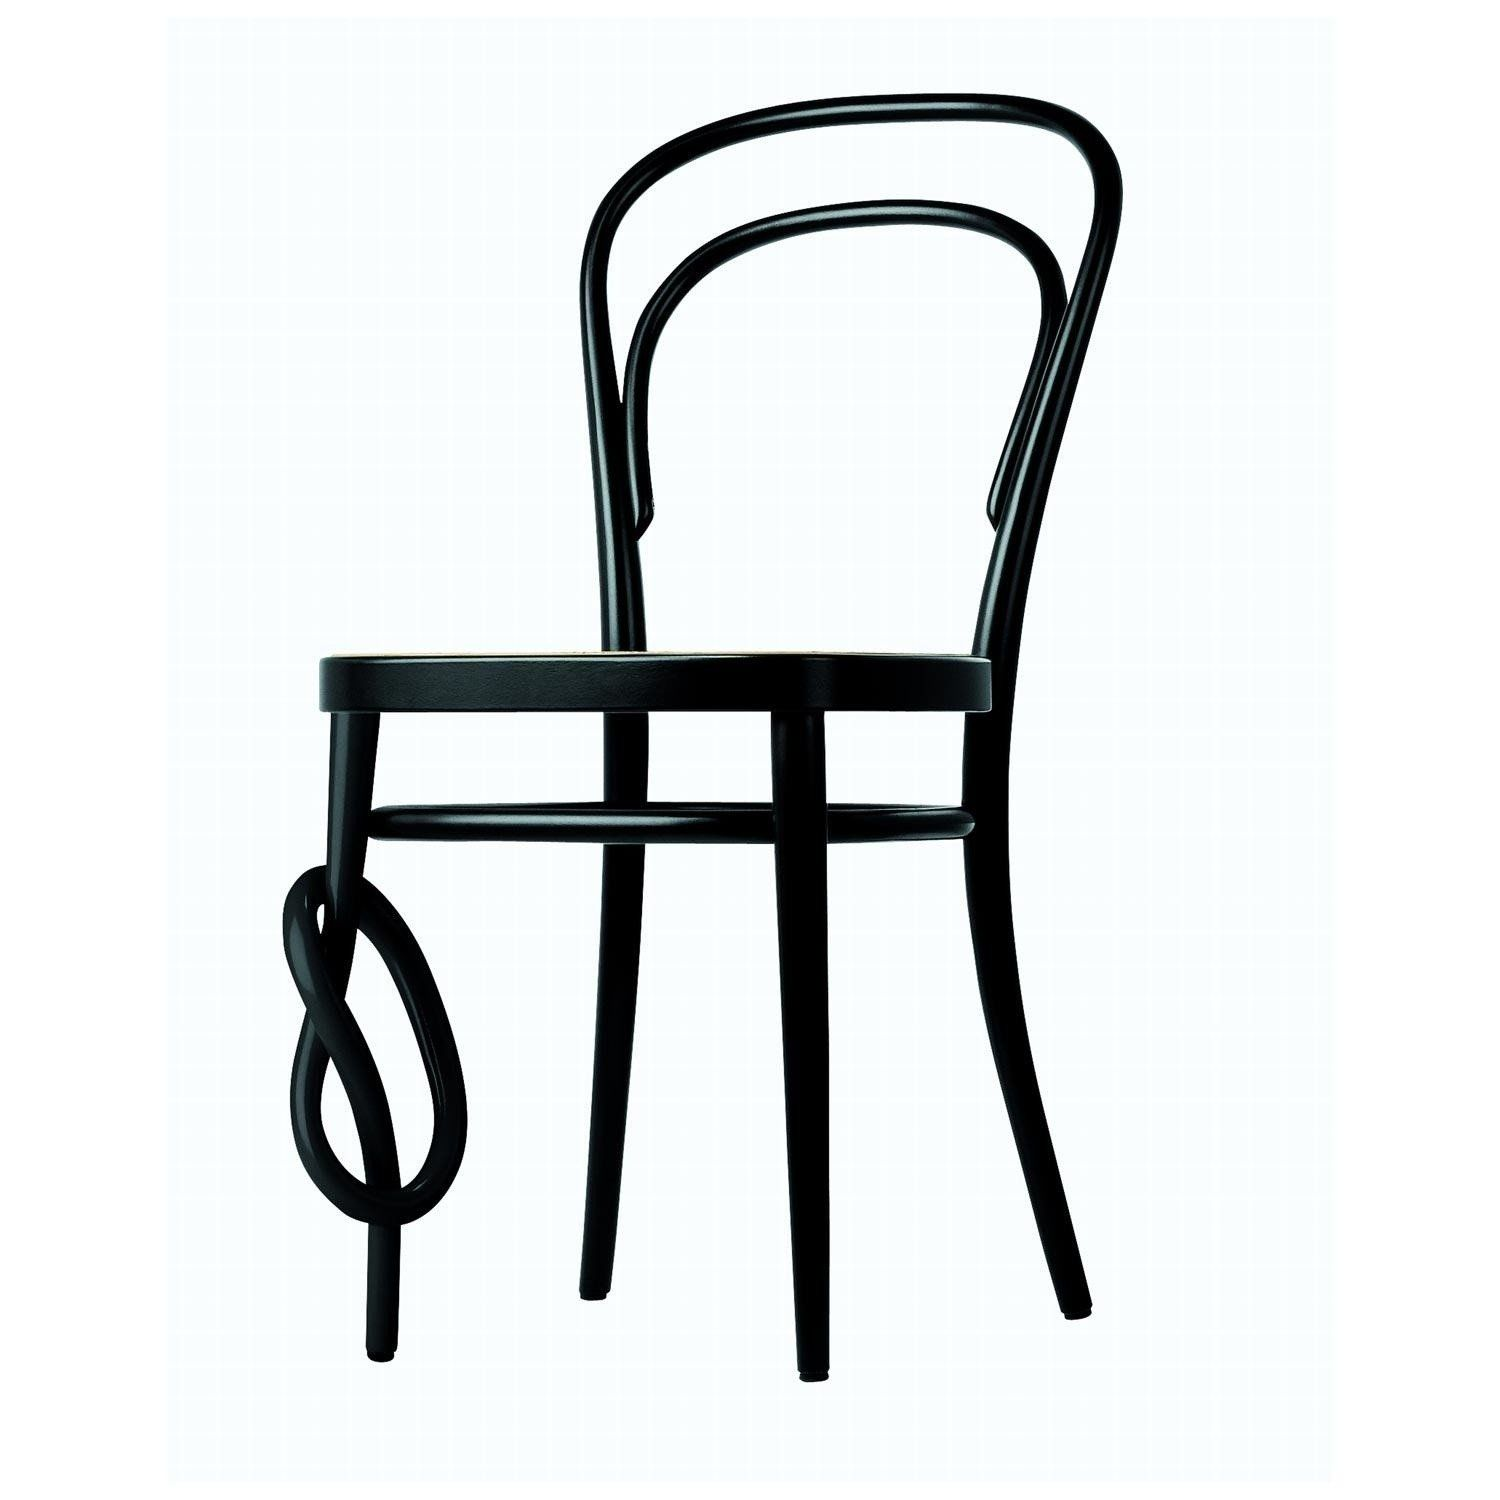 Thonet   Thonet 214 K Chair   Black/cane With Mesh ...